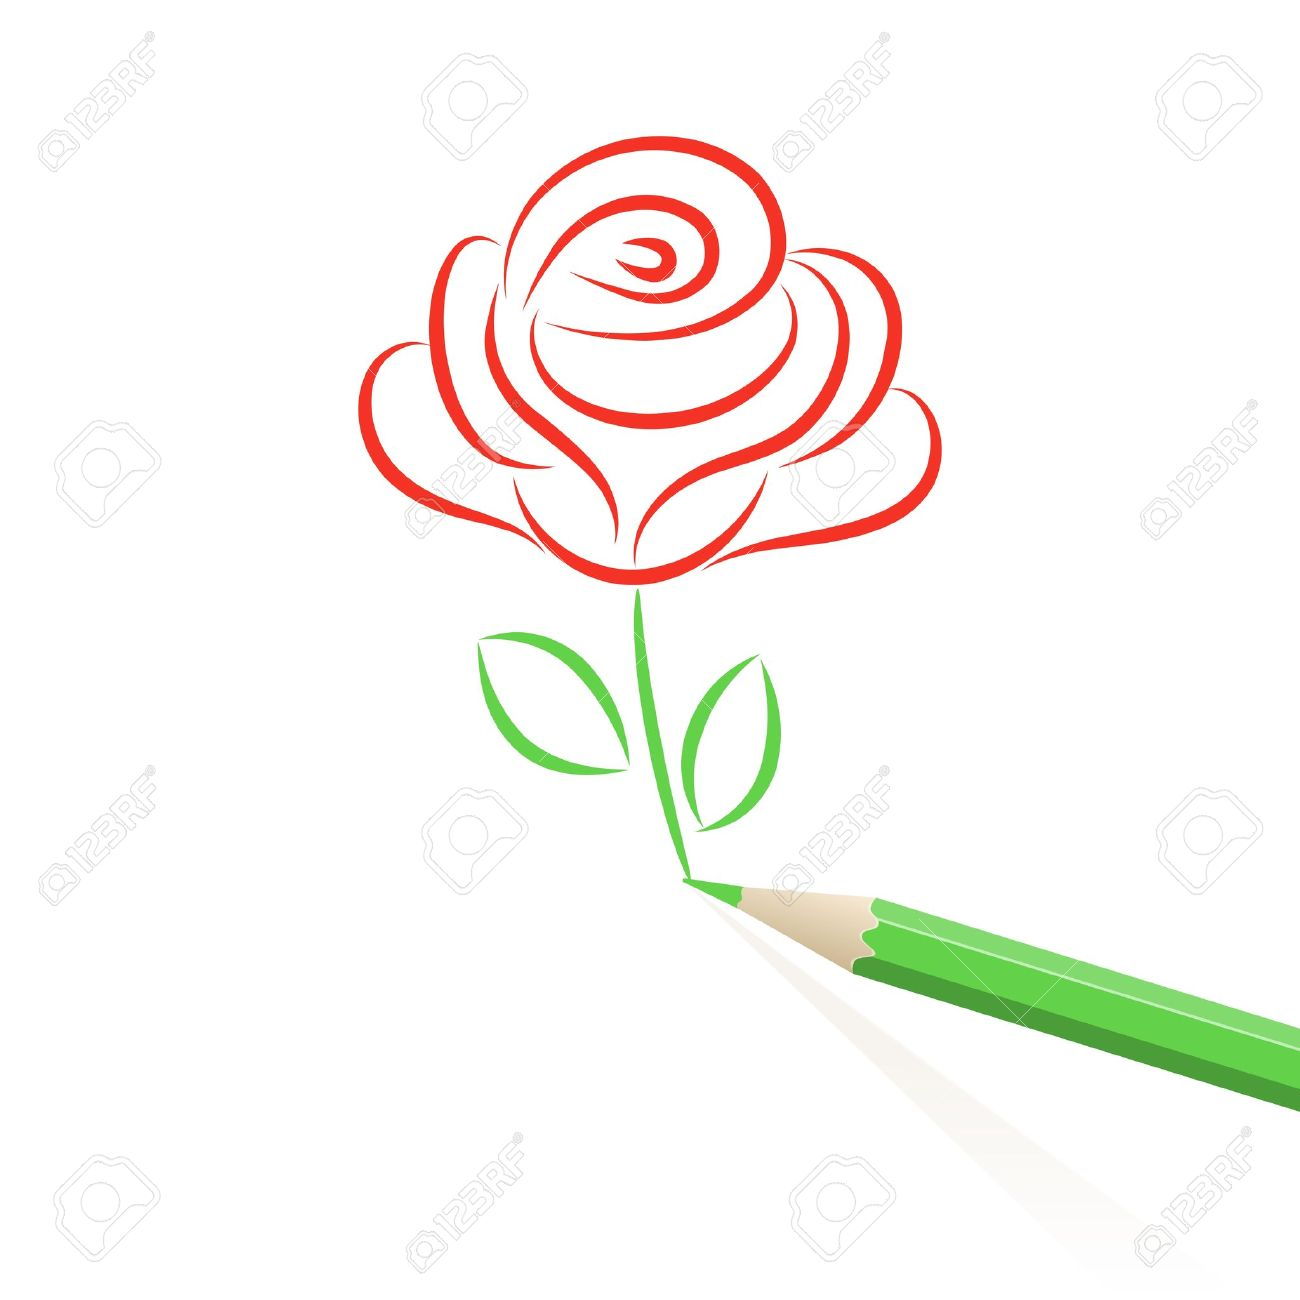 Rose Drawing Images Stock Pictures Royalty Free Rose Drawing